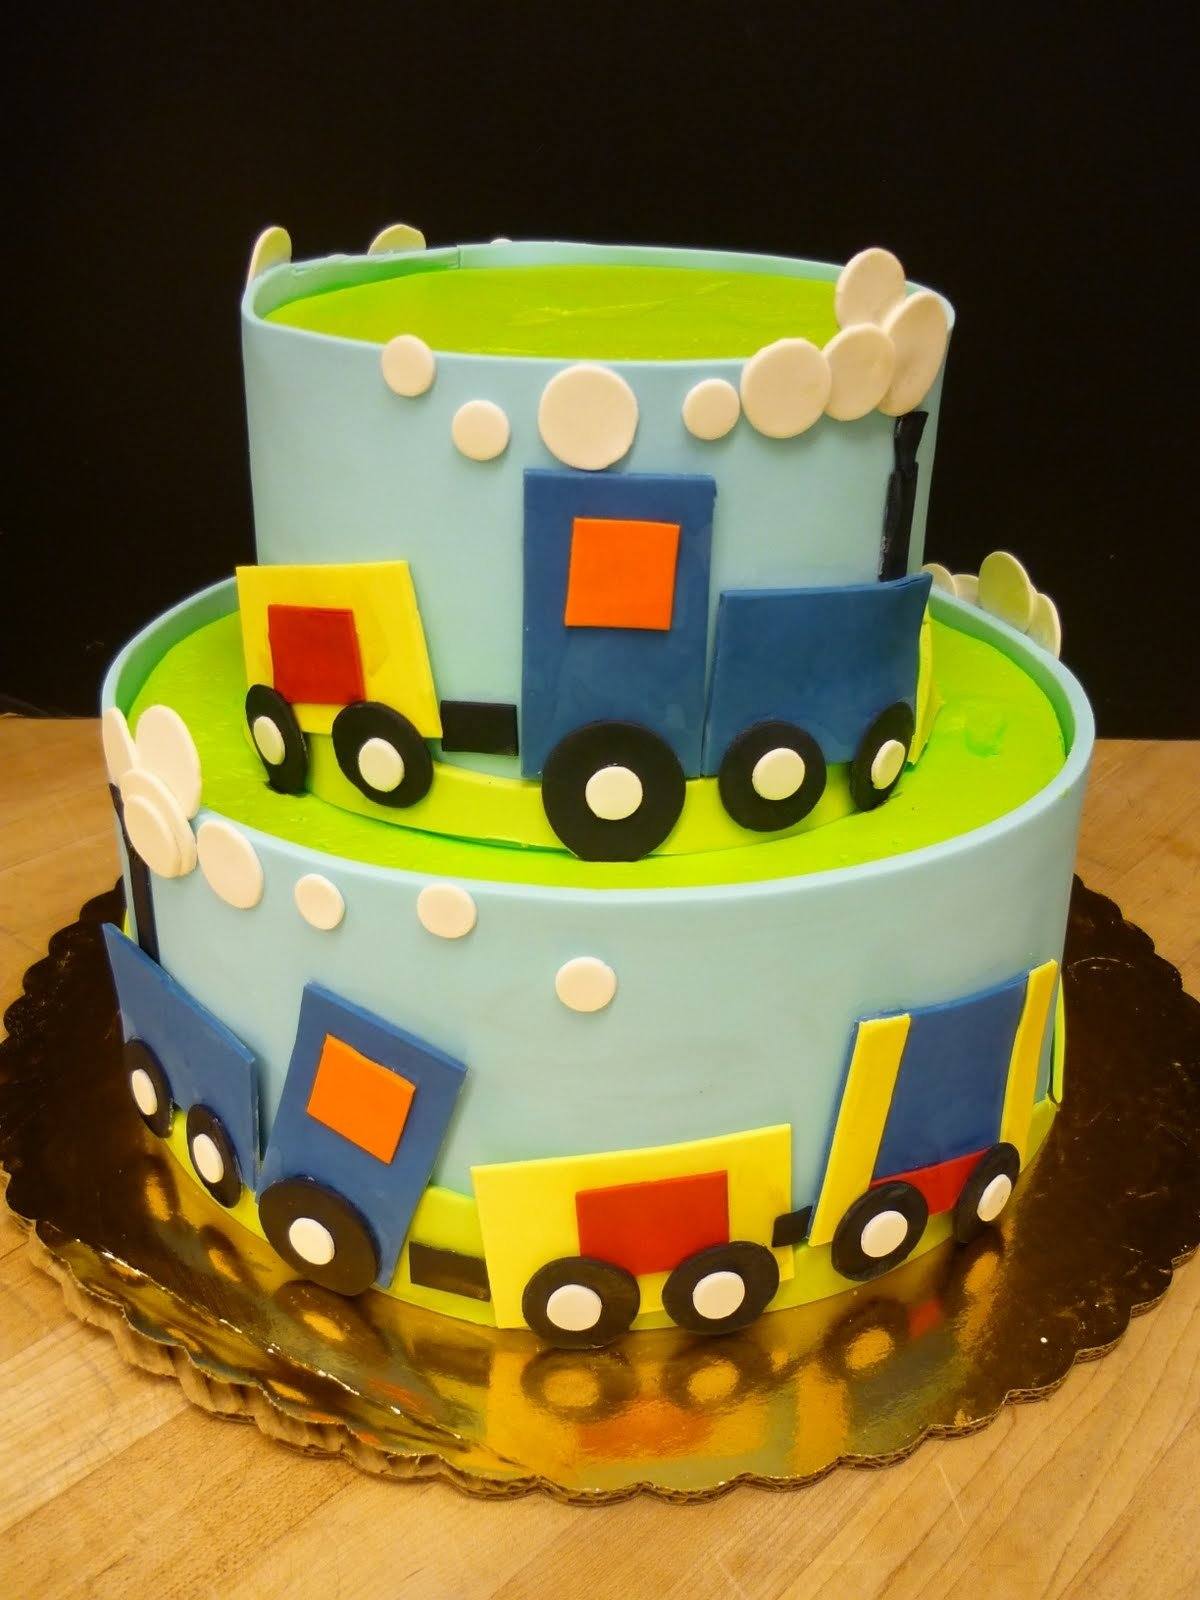 10 Amazing 2 Year Old Birthday Cake Ideas For 15 Boy